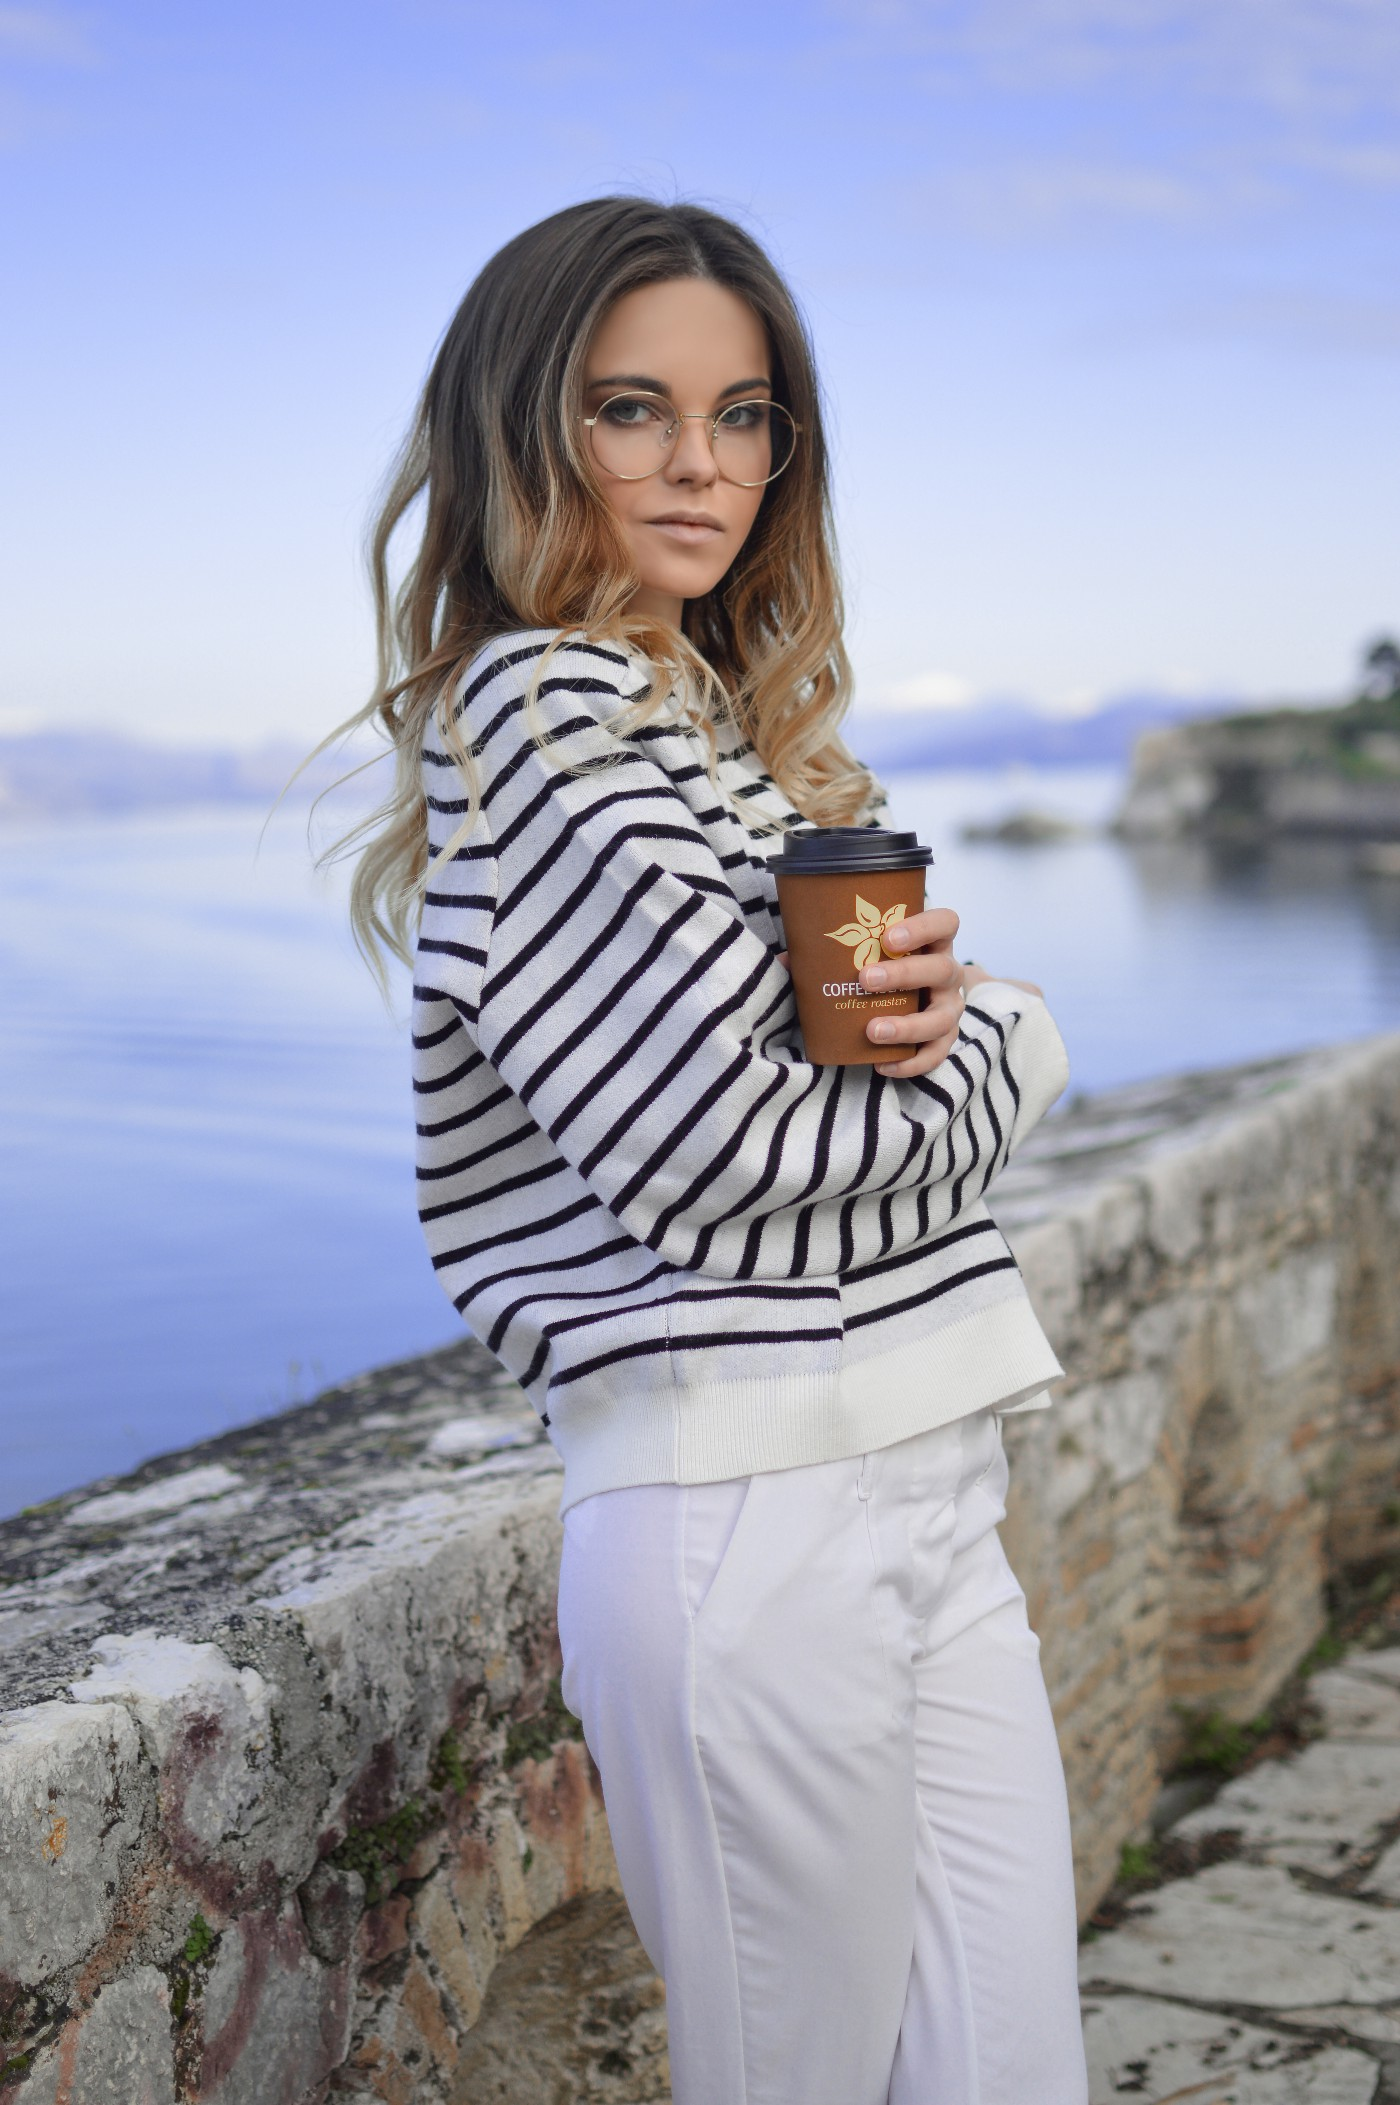 Dirty blonde White woman in a striped top and white pants holding a coffee cup